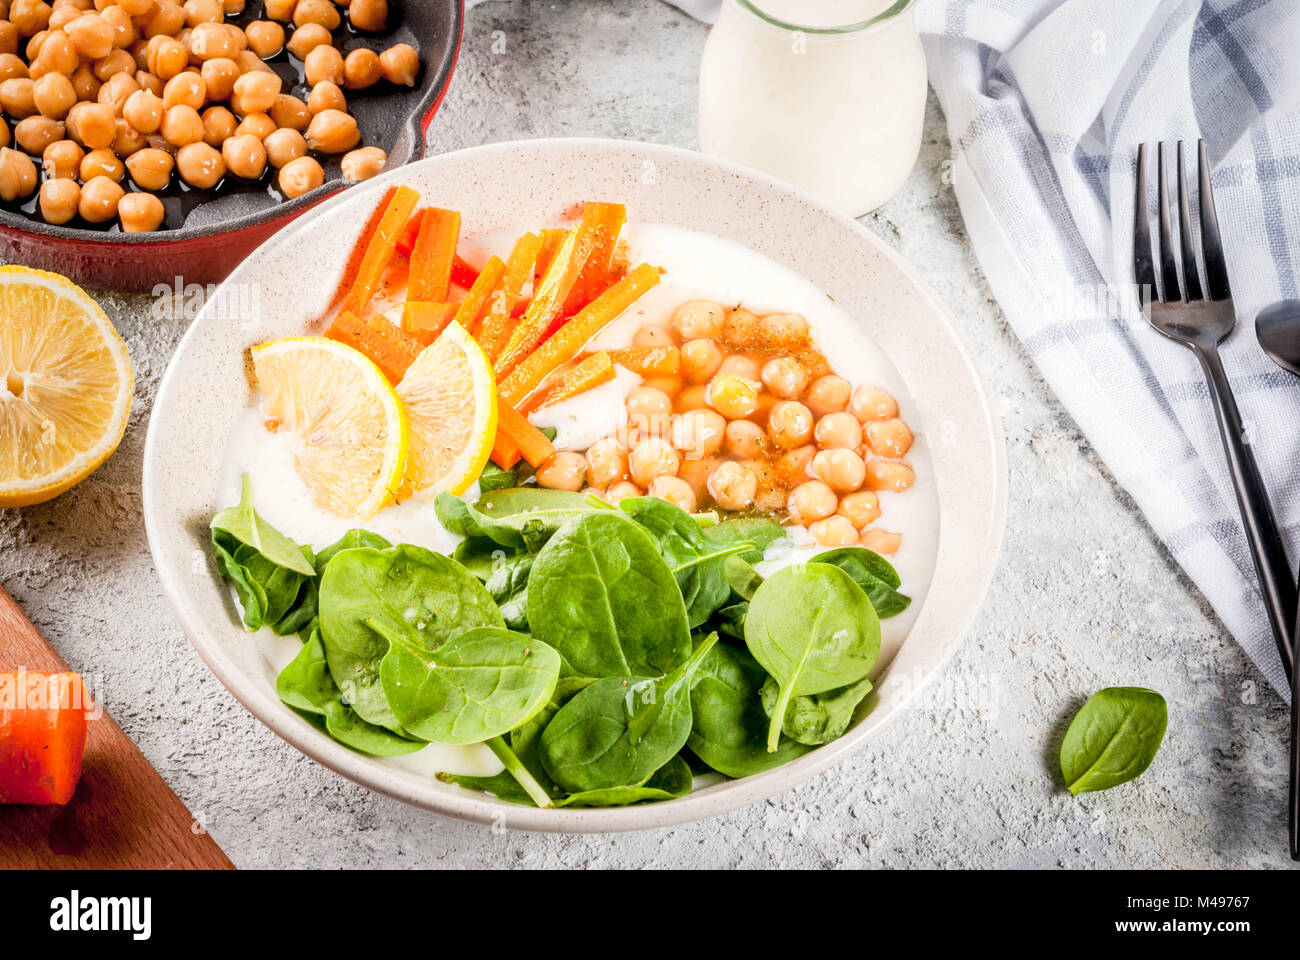 Modern vegan food, savory yogurt bowl with beans, chickpeas, spinach, spicy carrots, lemon, Gray stone background, - Stock Image